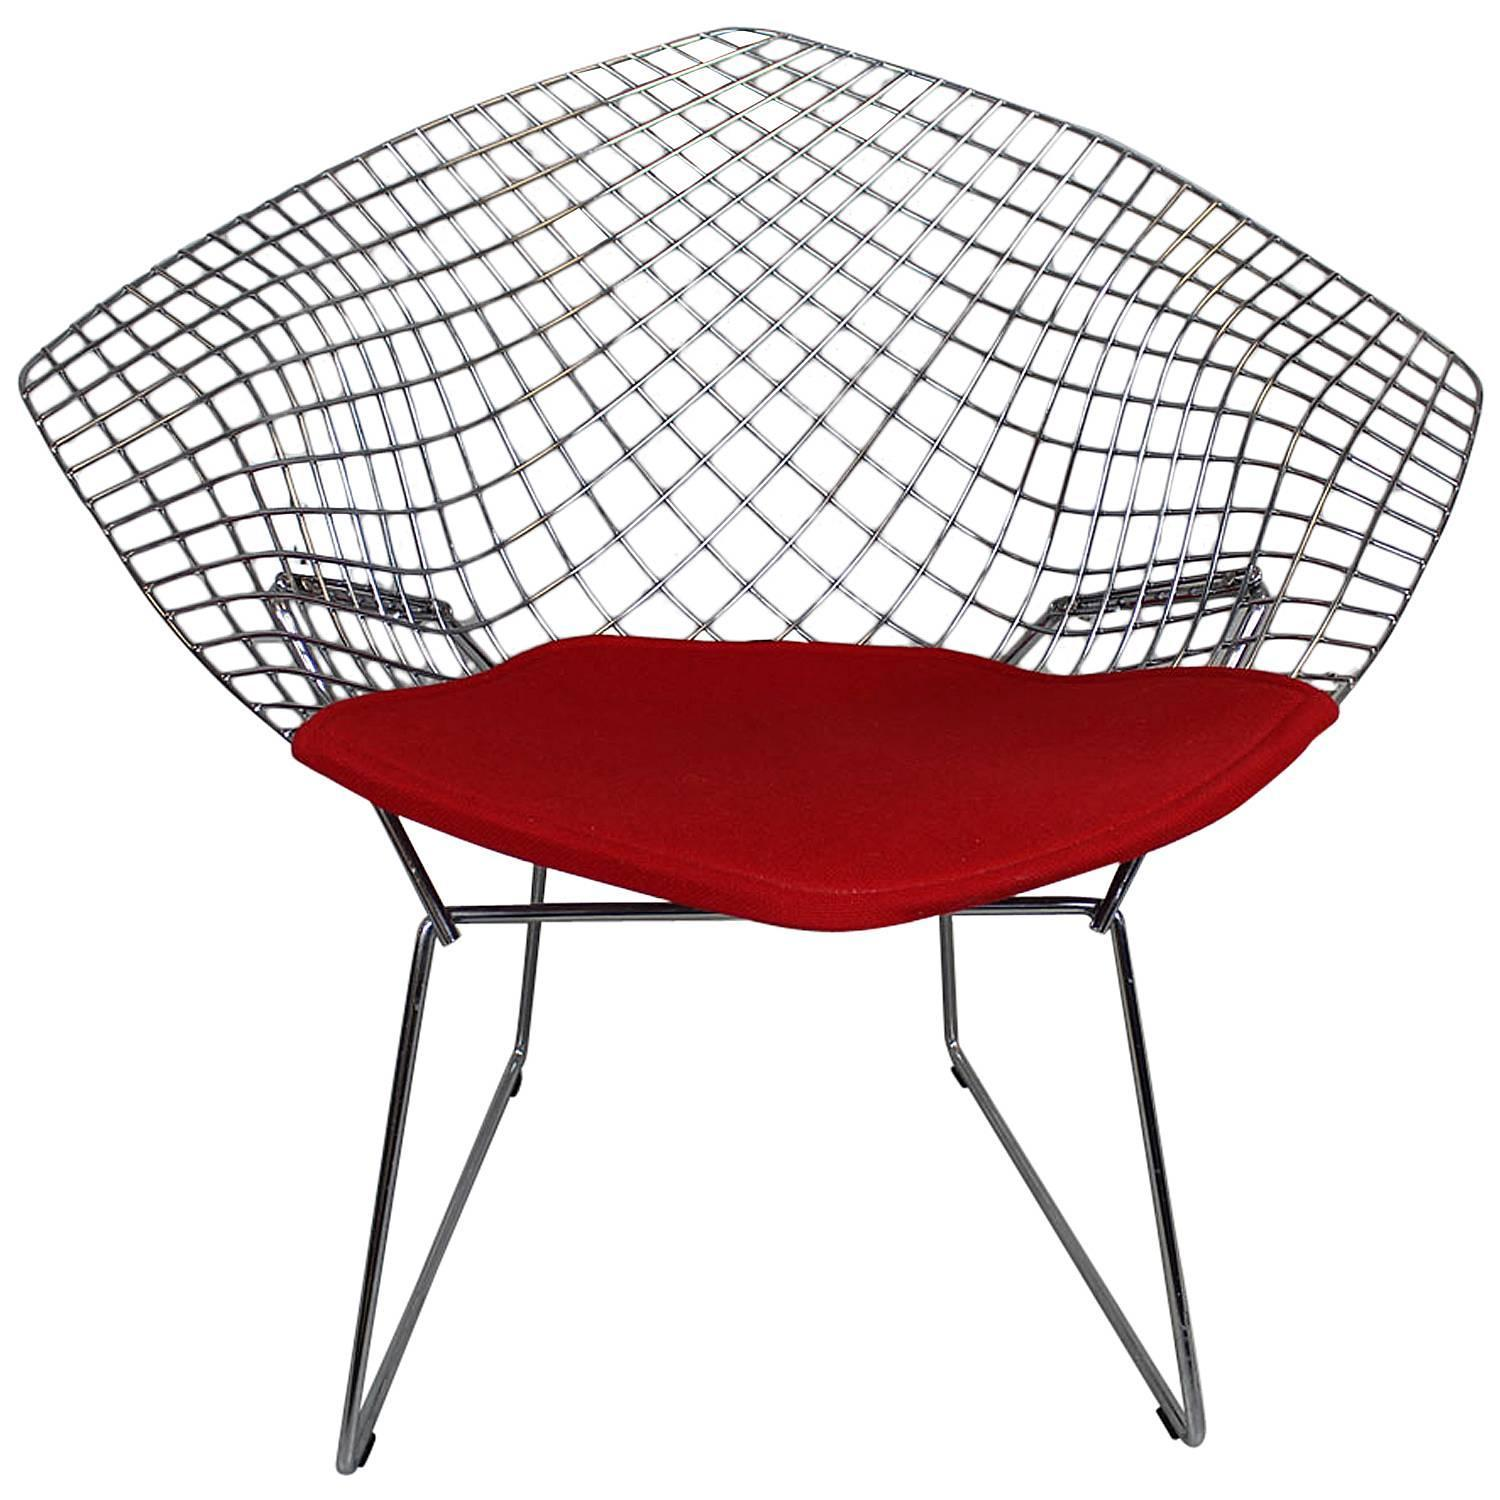 Wonderful Harry Bertoia Diamond Chair With Red Wool Pad For Sale At 1stdibs